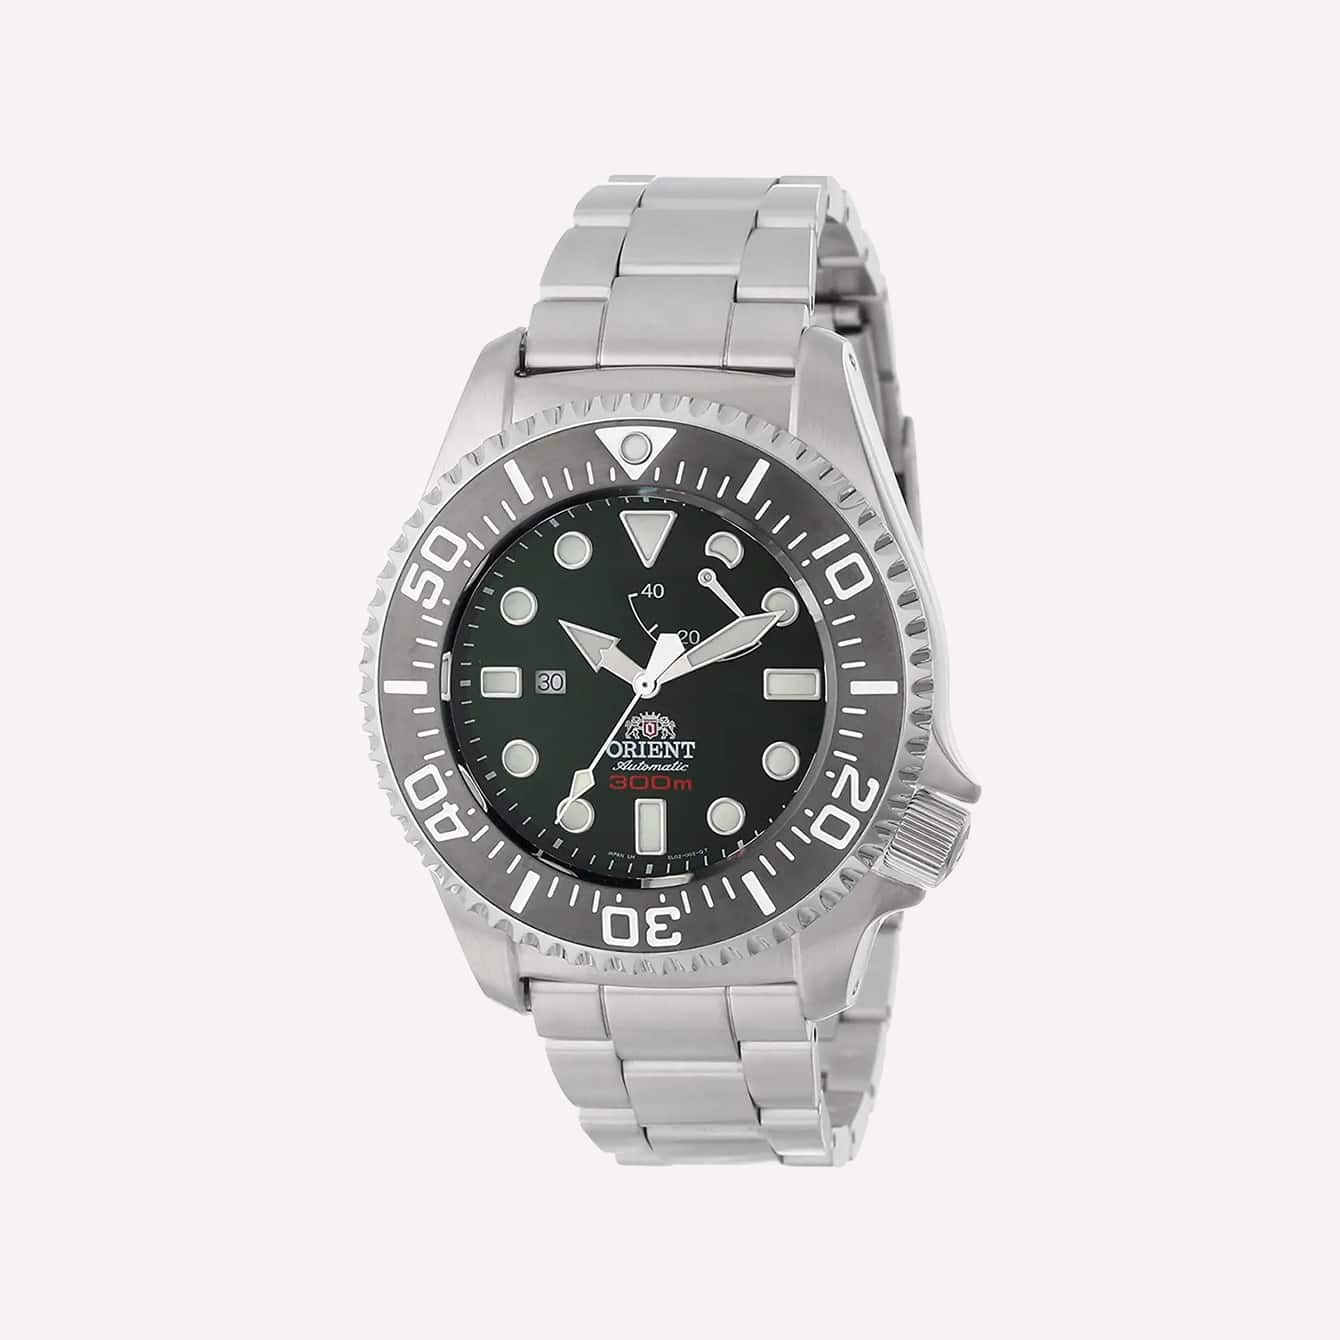 Orient Men s SEL02002B0 Pro Saturation 300M ISO Certified Professional Divers Watch